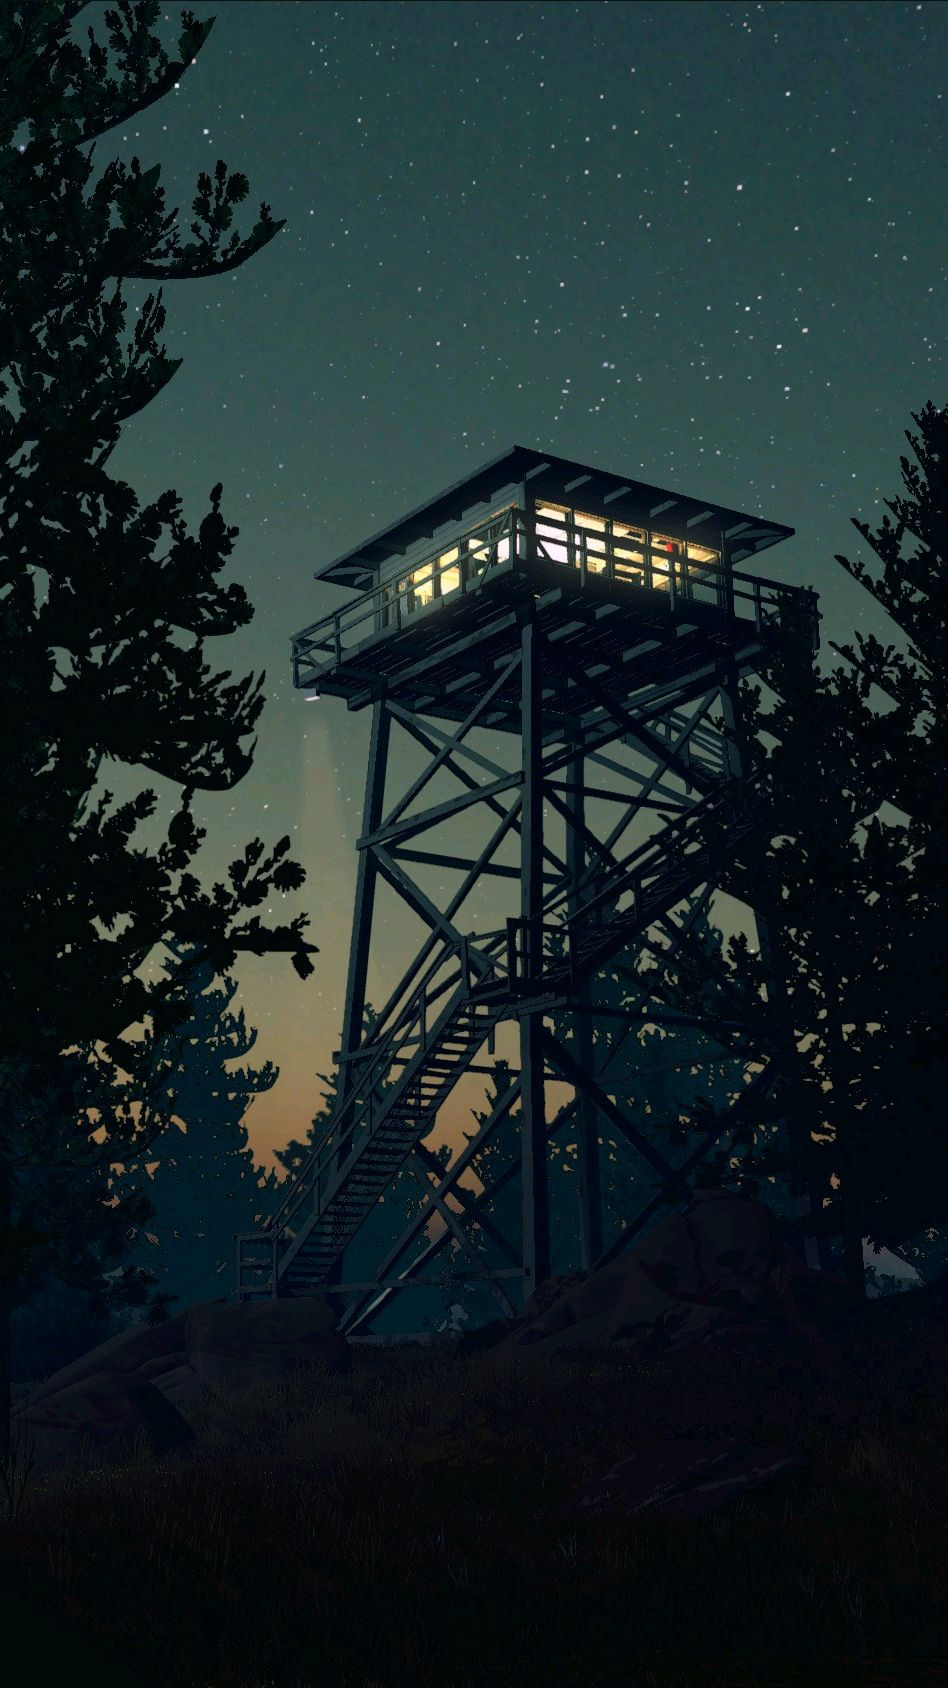 Cute Halloween Ipad Wallpaper Firewatch Game Minimal Tower Night Iphone Wallpaper